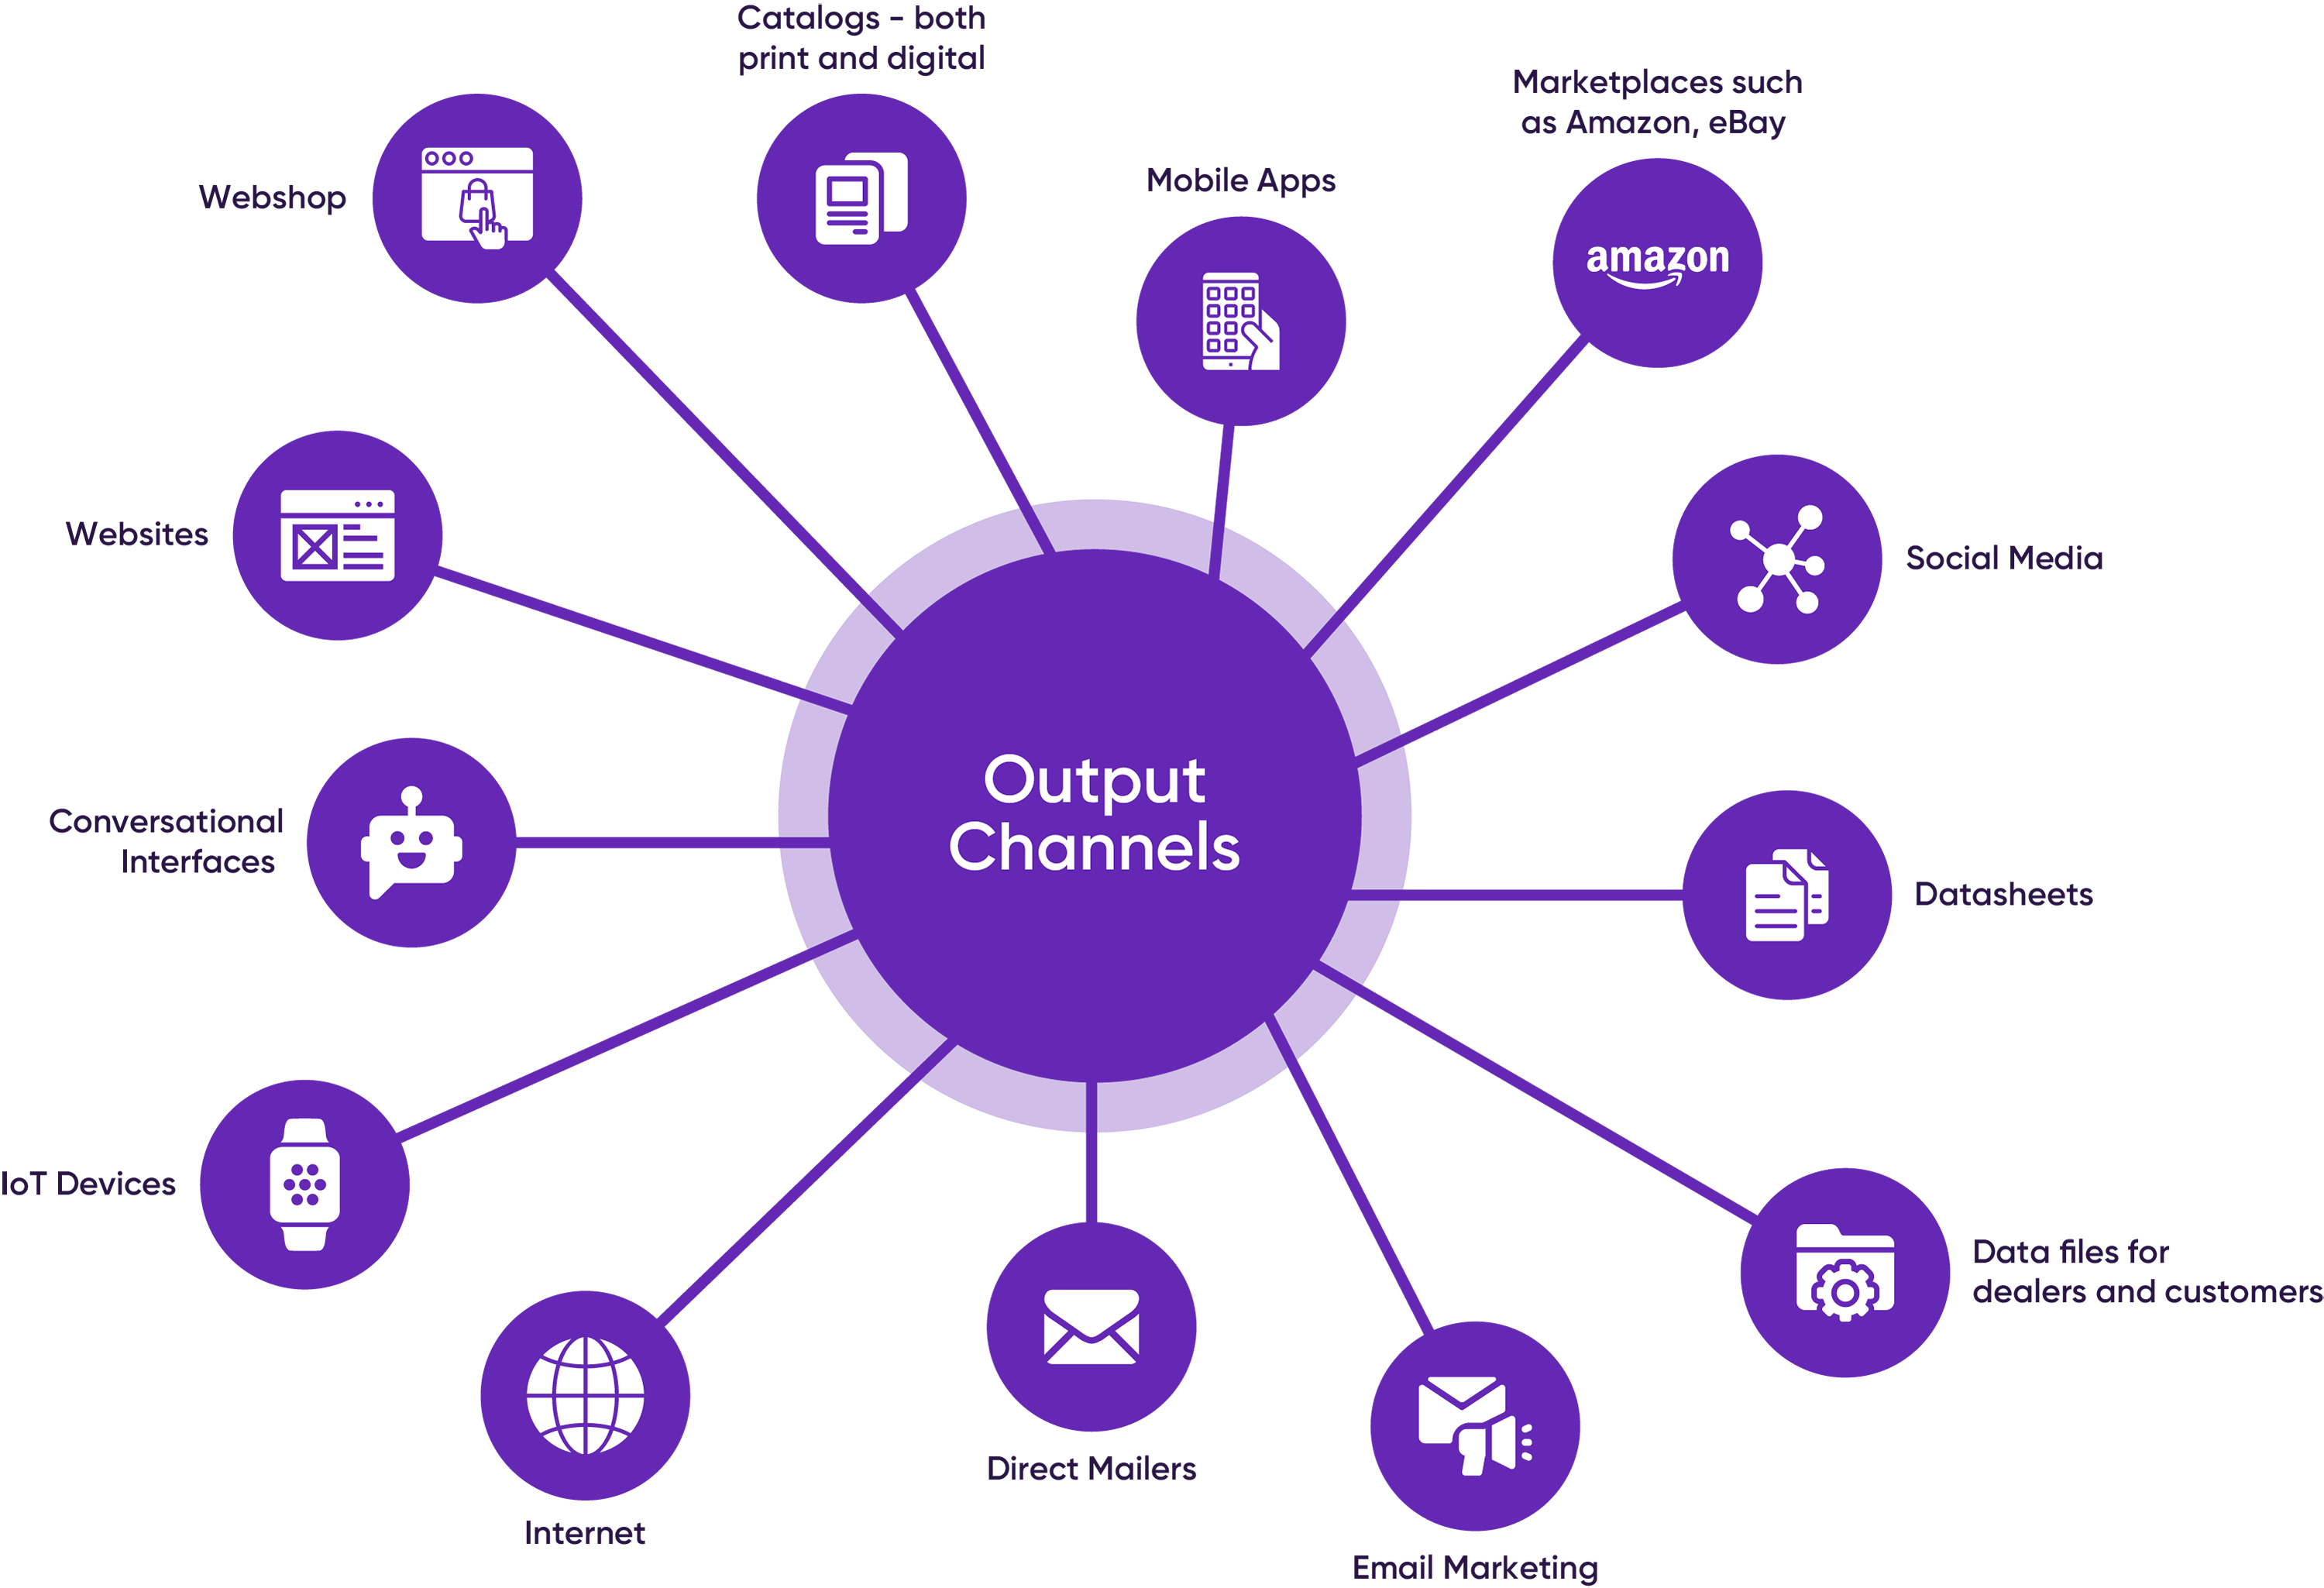 Output Channels of Product Information Management (PIM) - Pimcore